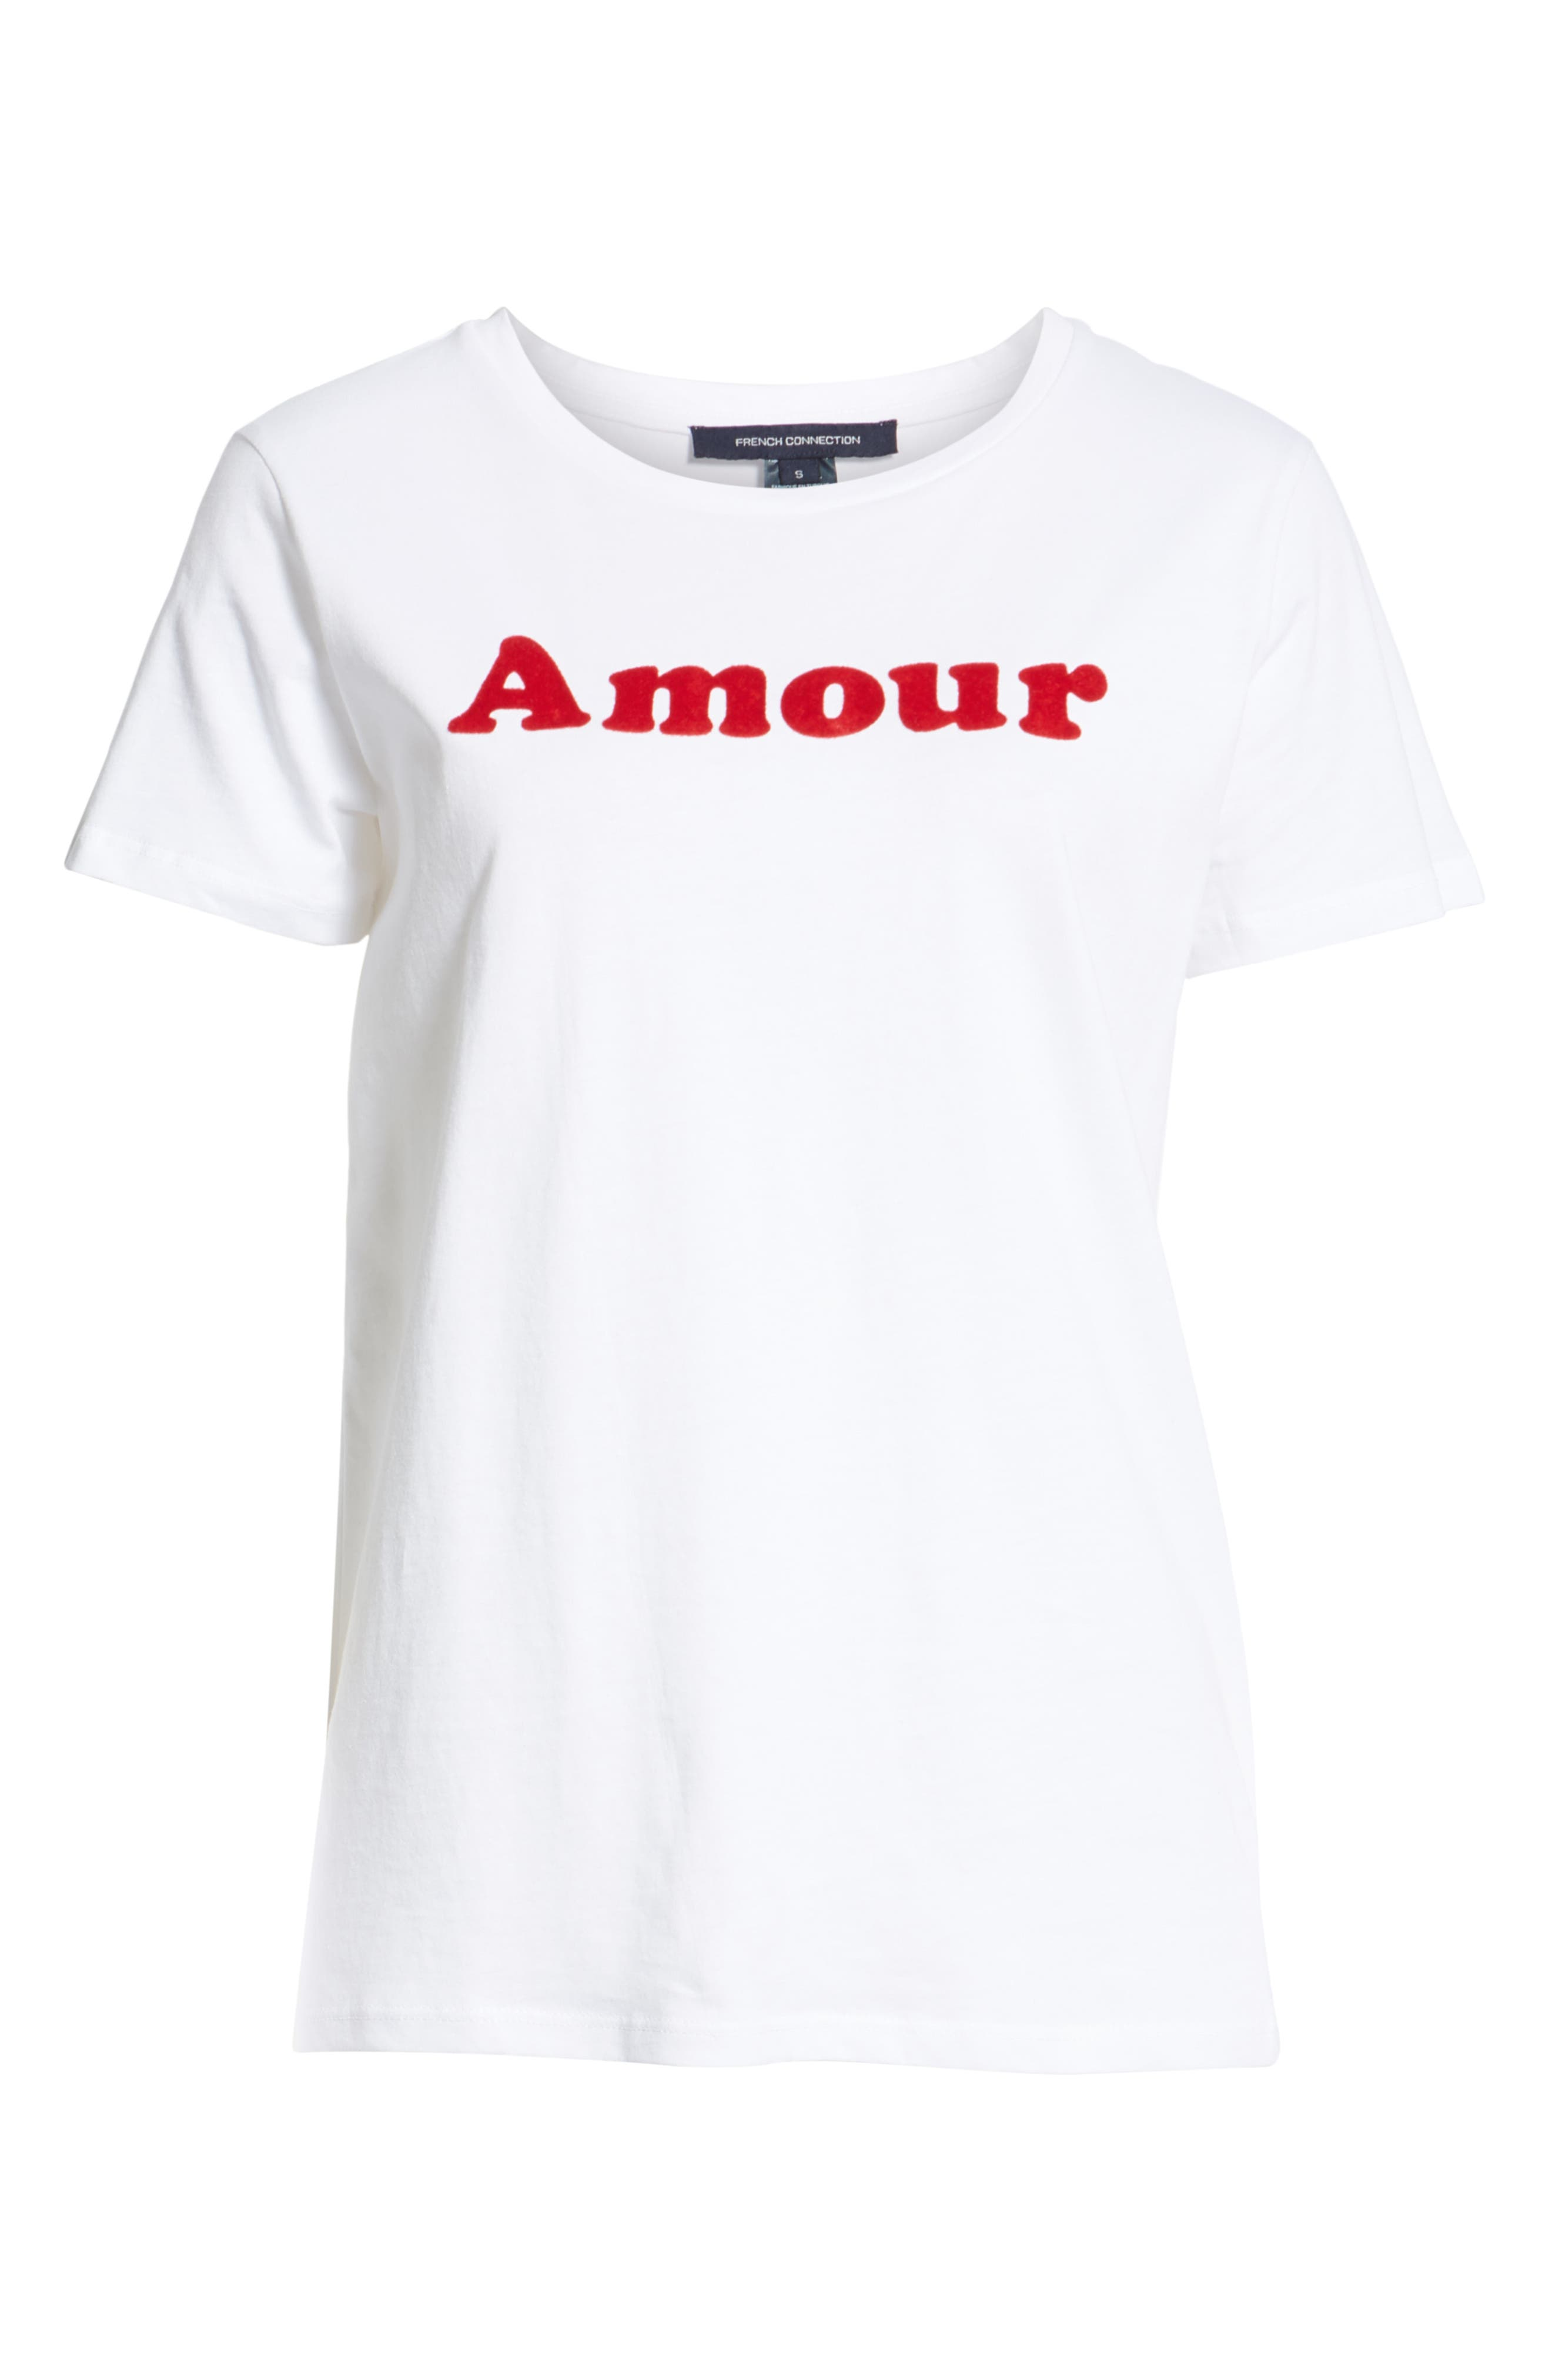 Amour Graphic Tee,                             Alternate thumbnail 6, color,                             WHITE